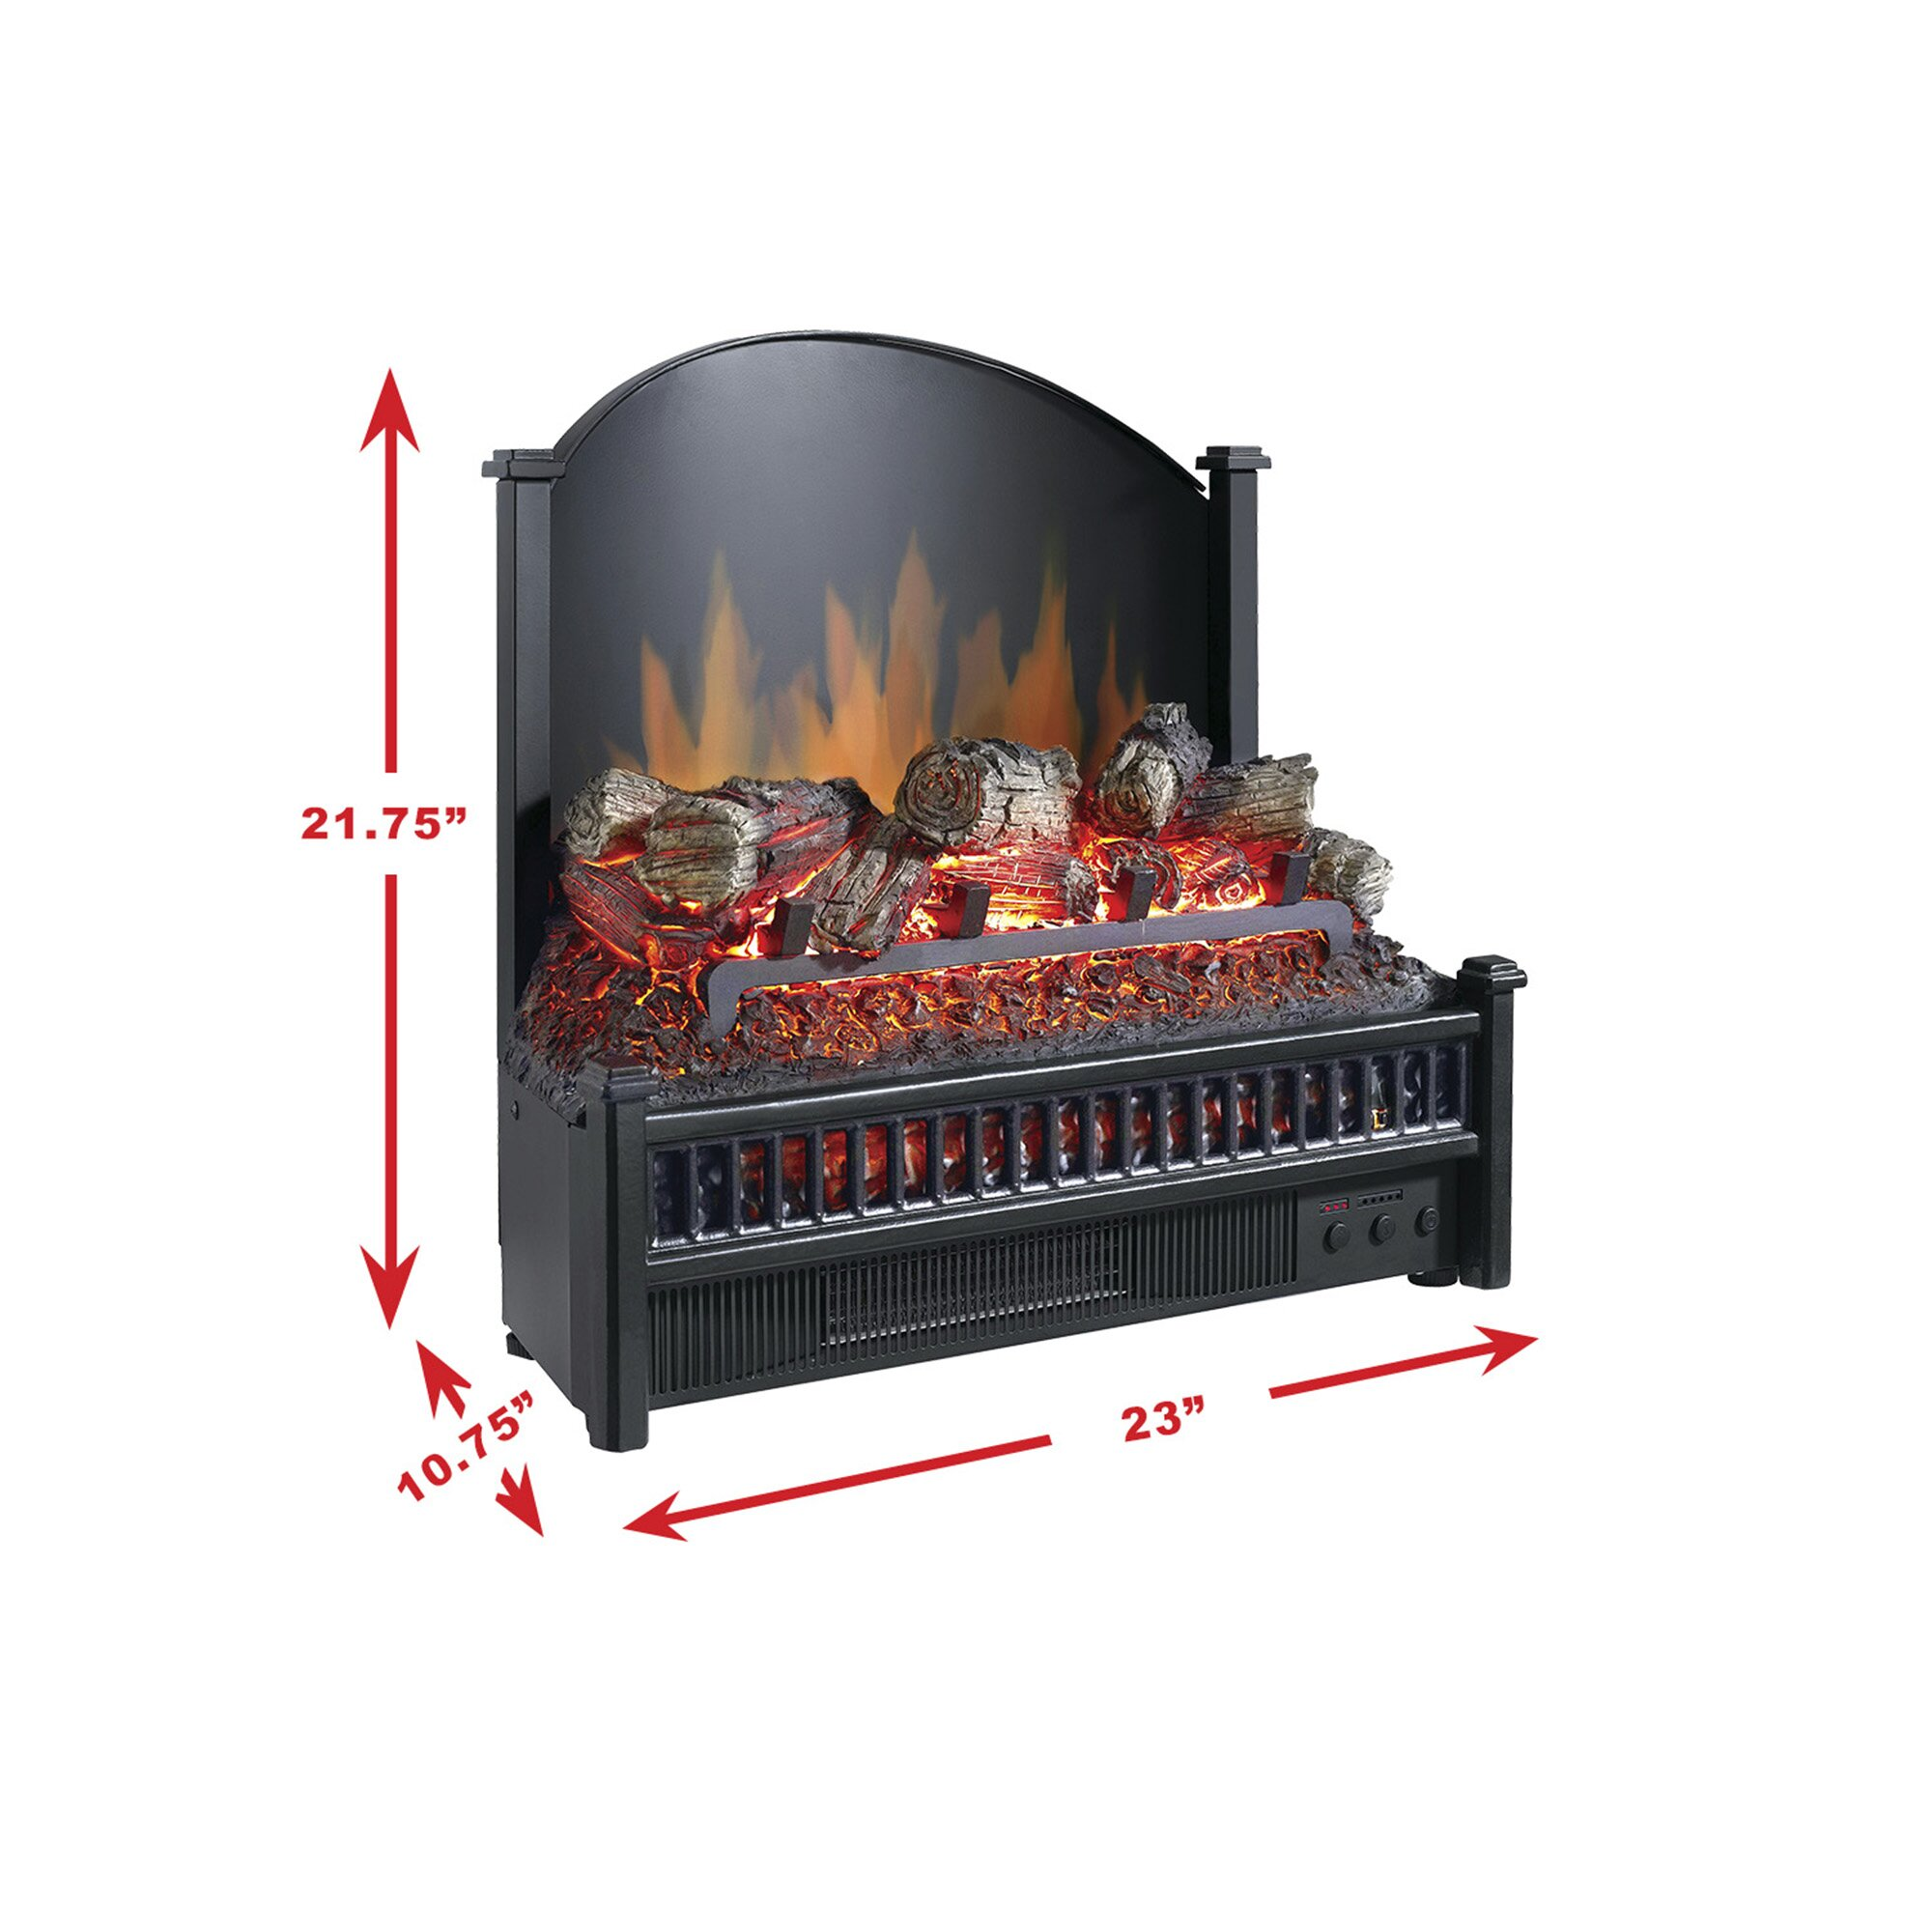 Electric Chair Heater Pleasant Hearth Electric Fireplace Logs Heater & Reviews ...